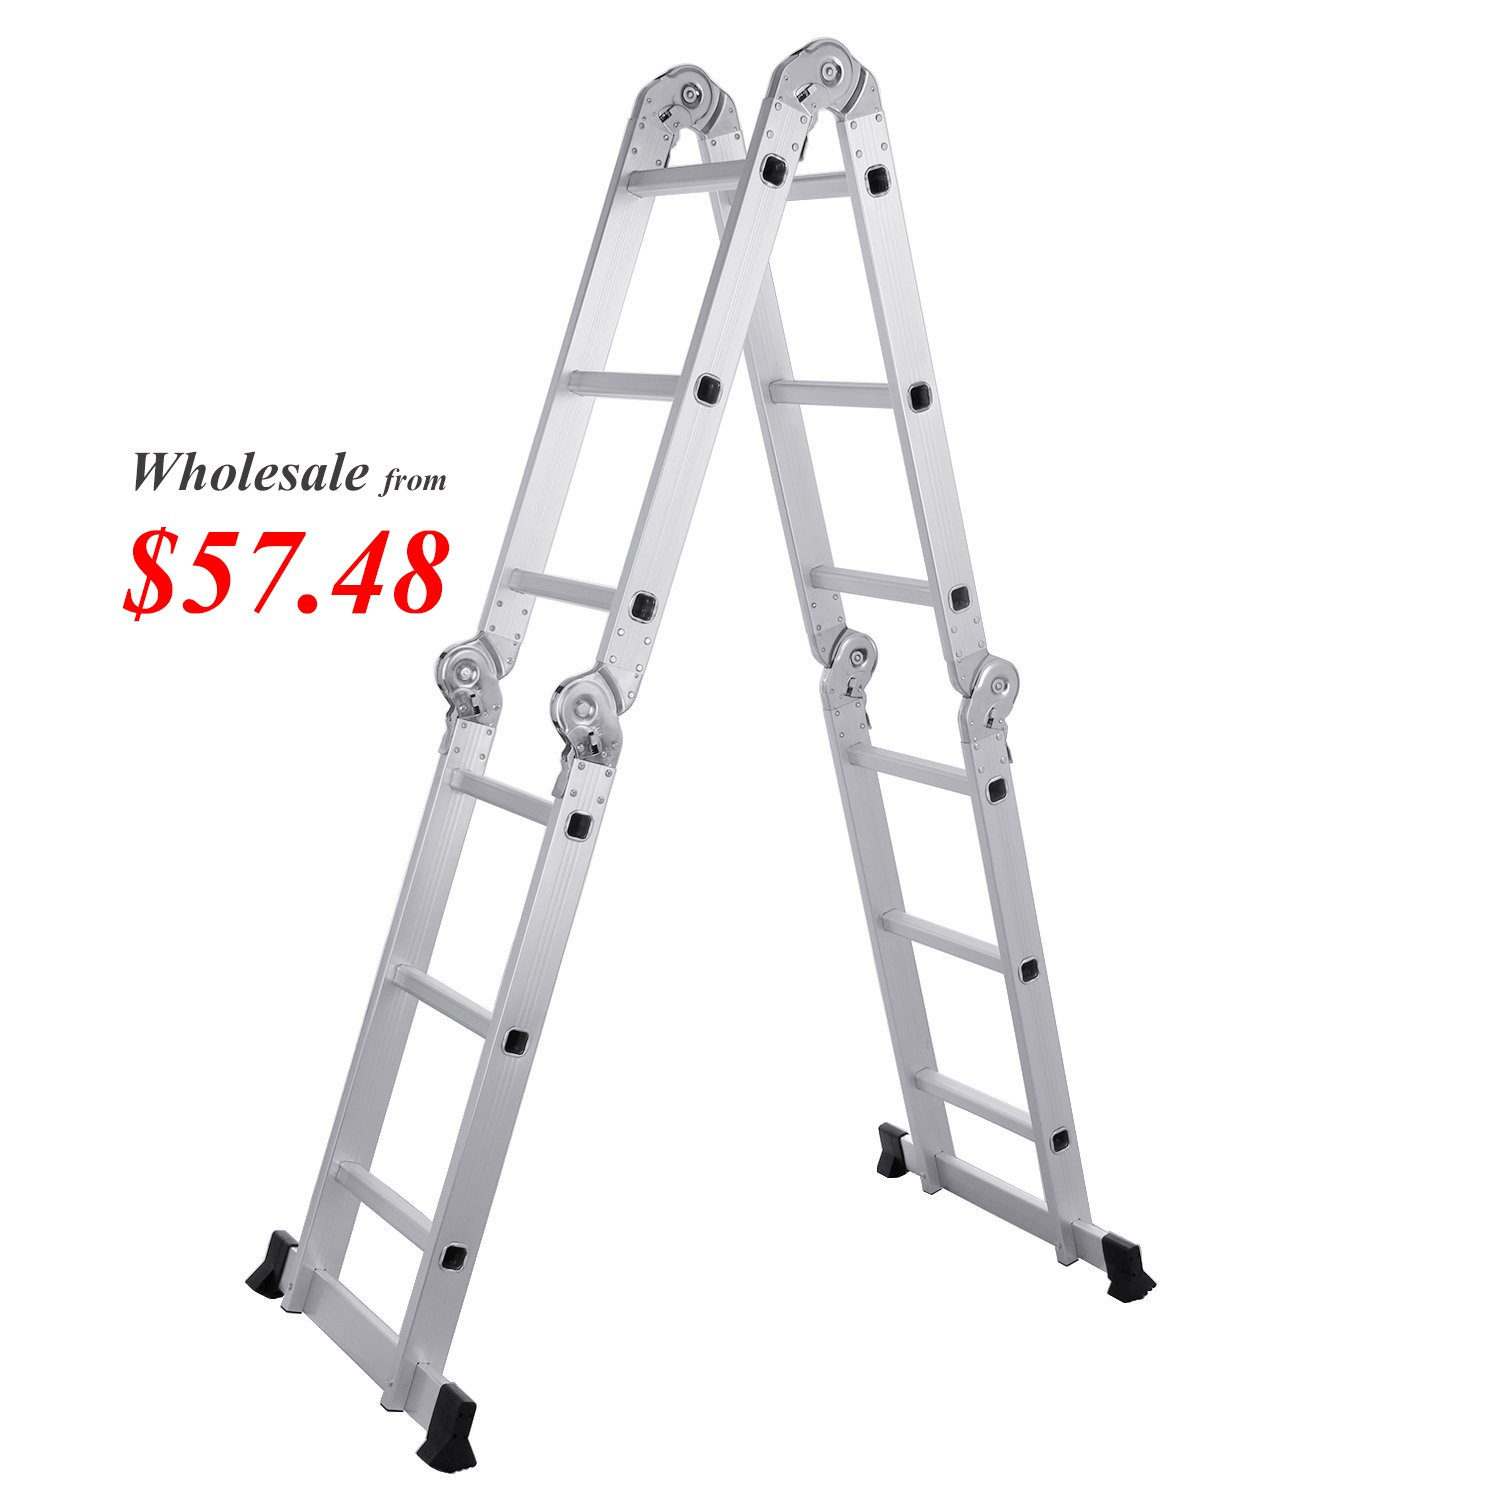 Lifewit Folding 7 in 1 Multi Purpose Extendable Platform Scaffold